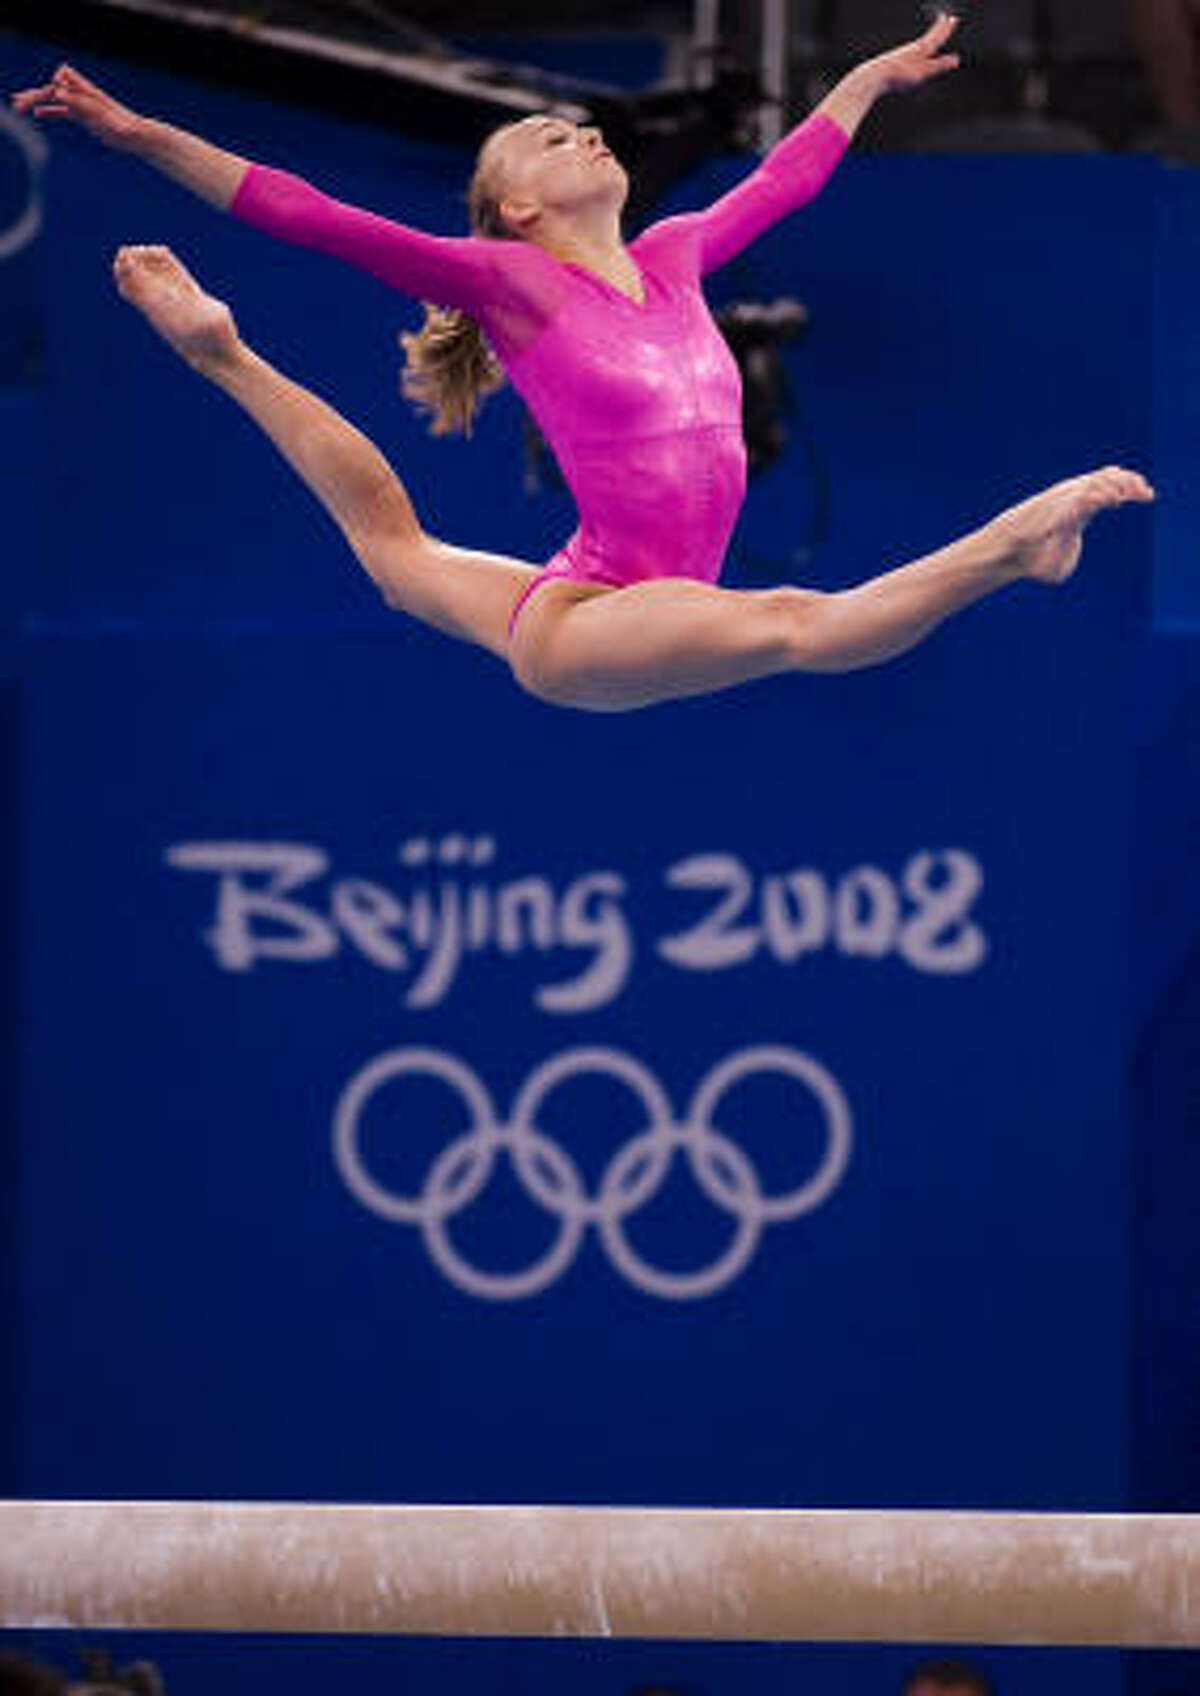 U.S. gymnast Nastia Liukin competes on the balance beam on her way to winning the gold medal during the women's gymnastics all-around final at the 2008 Summer Olympic Games on Friday in Beijing.